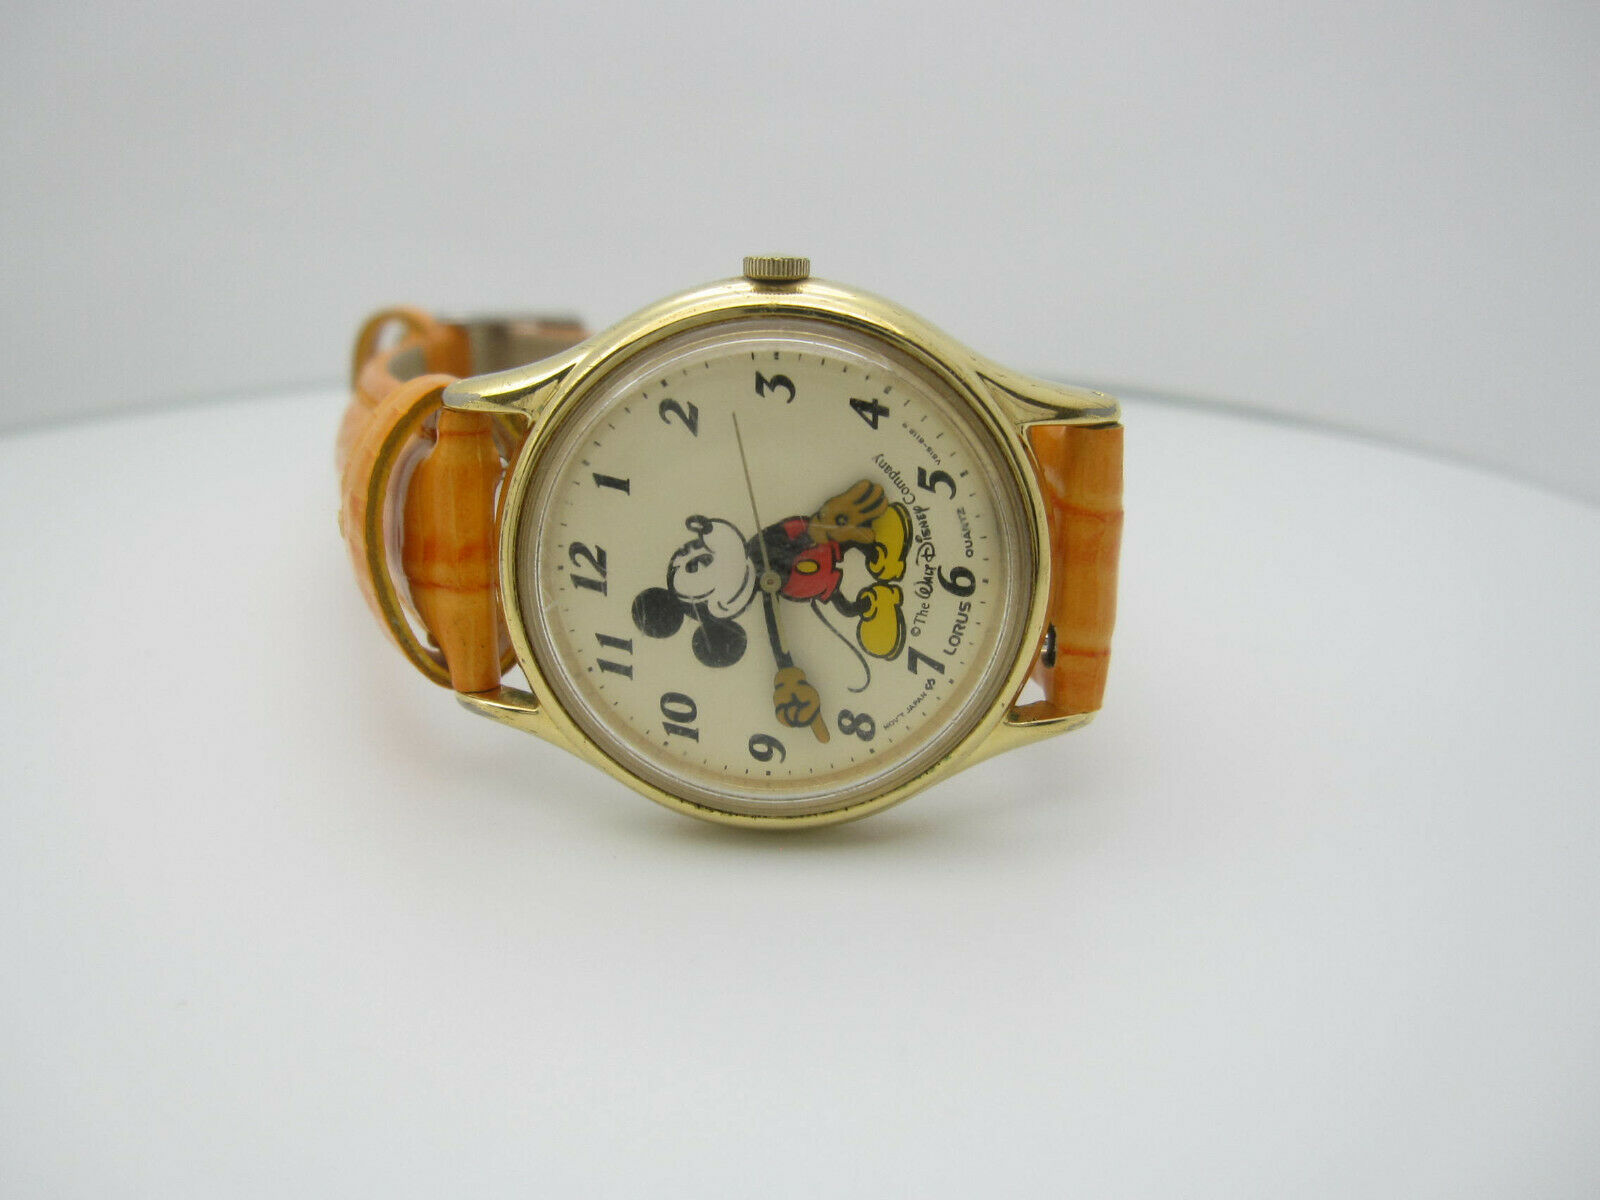 Vintage Mickey Mouse Quartz WR Analog Dial Watch (B956) V515-6118R image 10